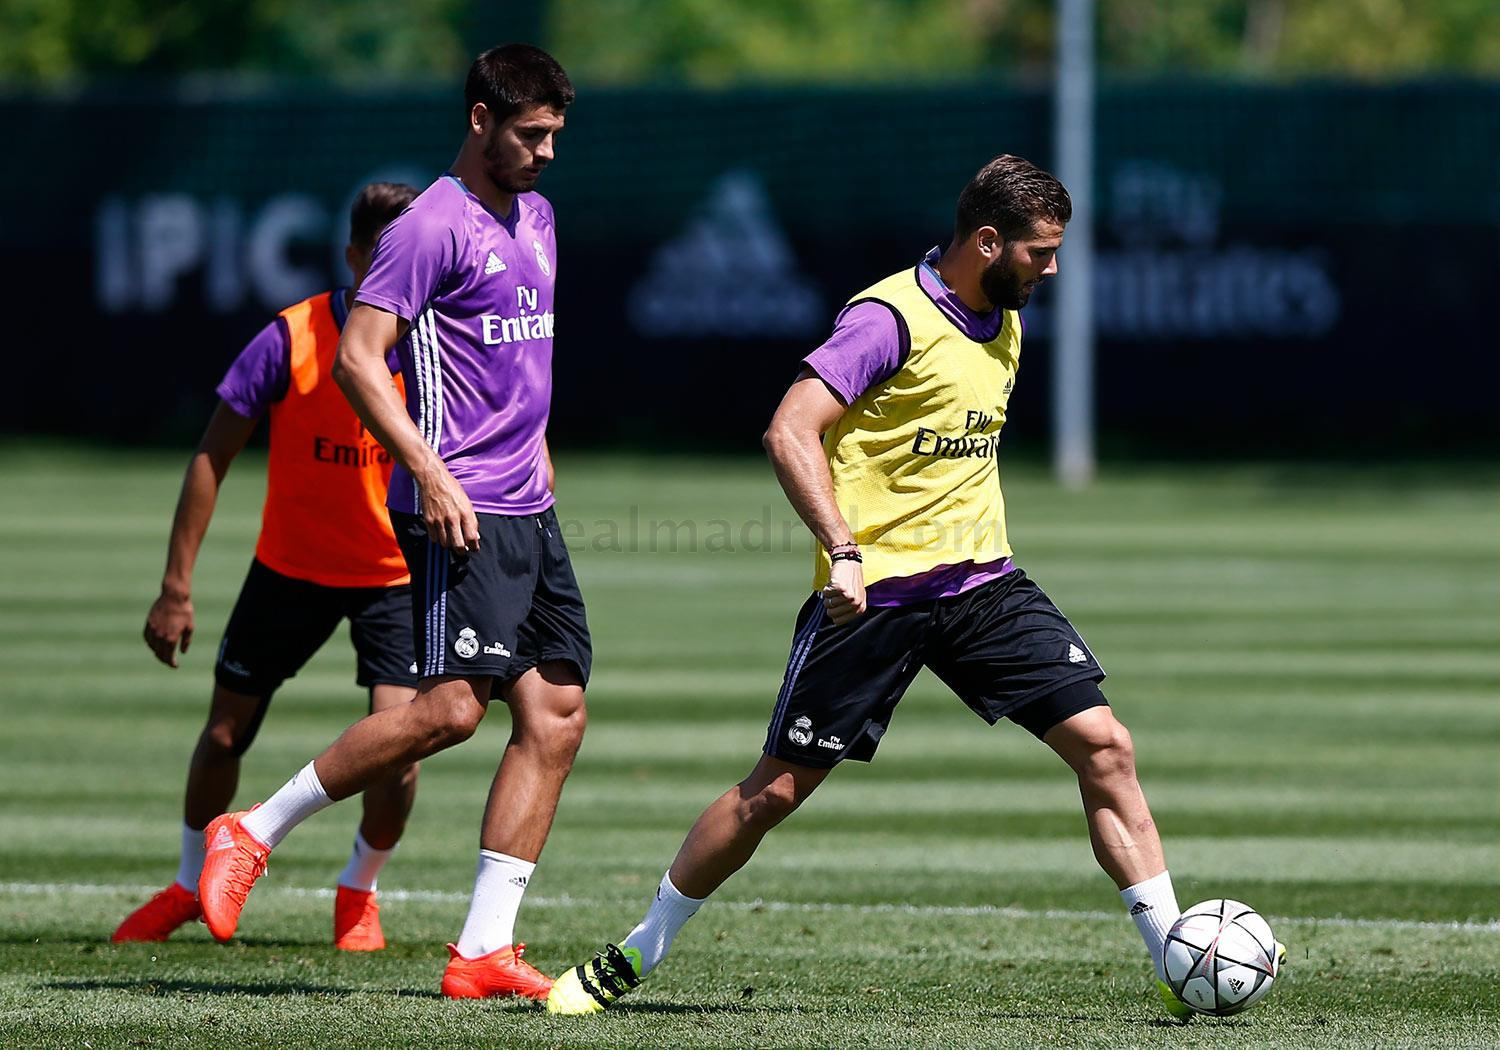 Real Madrid - Entrenamiento del Real Madrid en Montreal - 24-07-2016